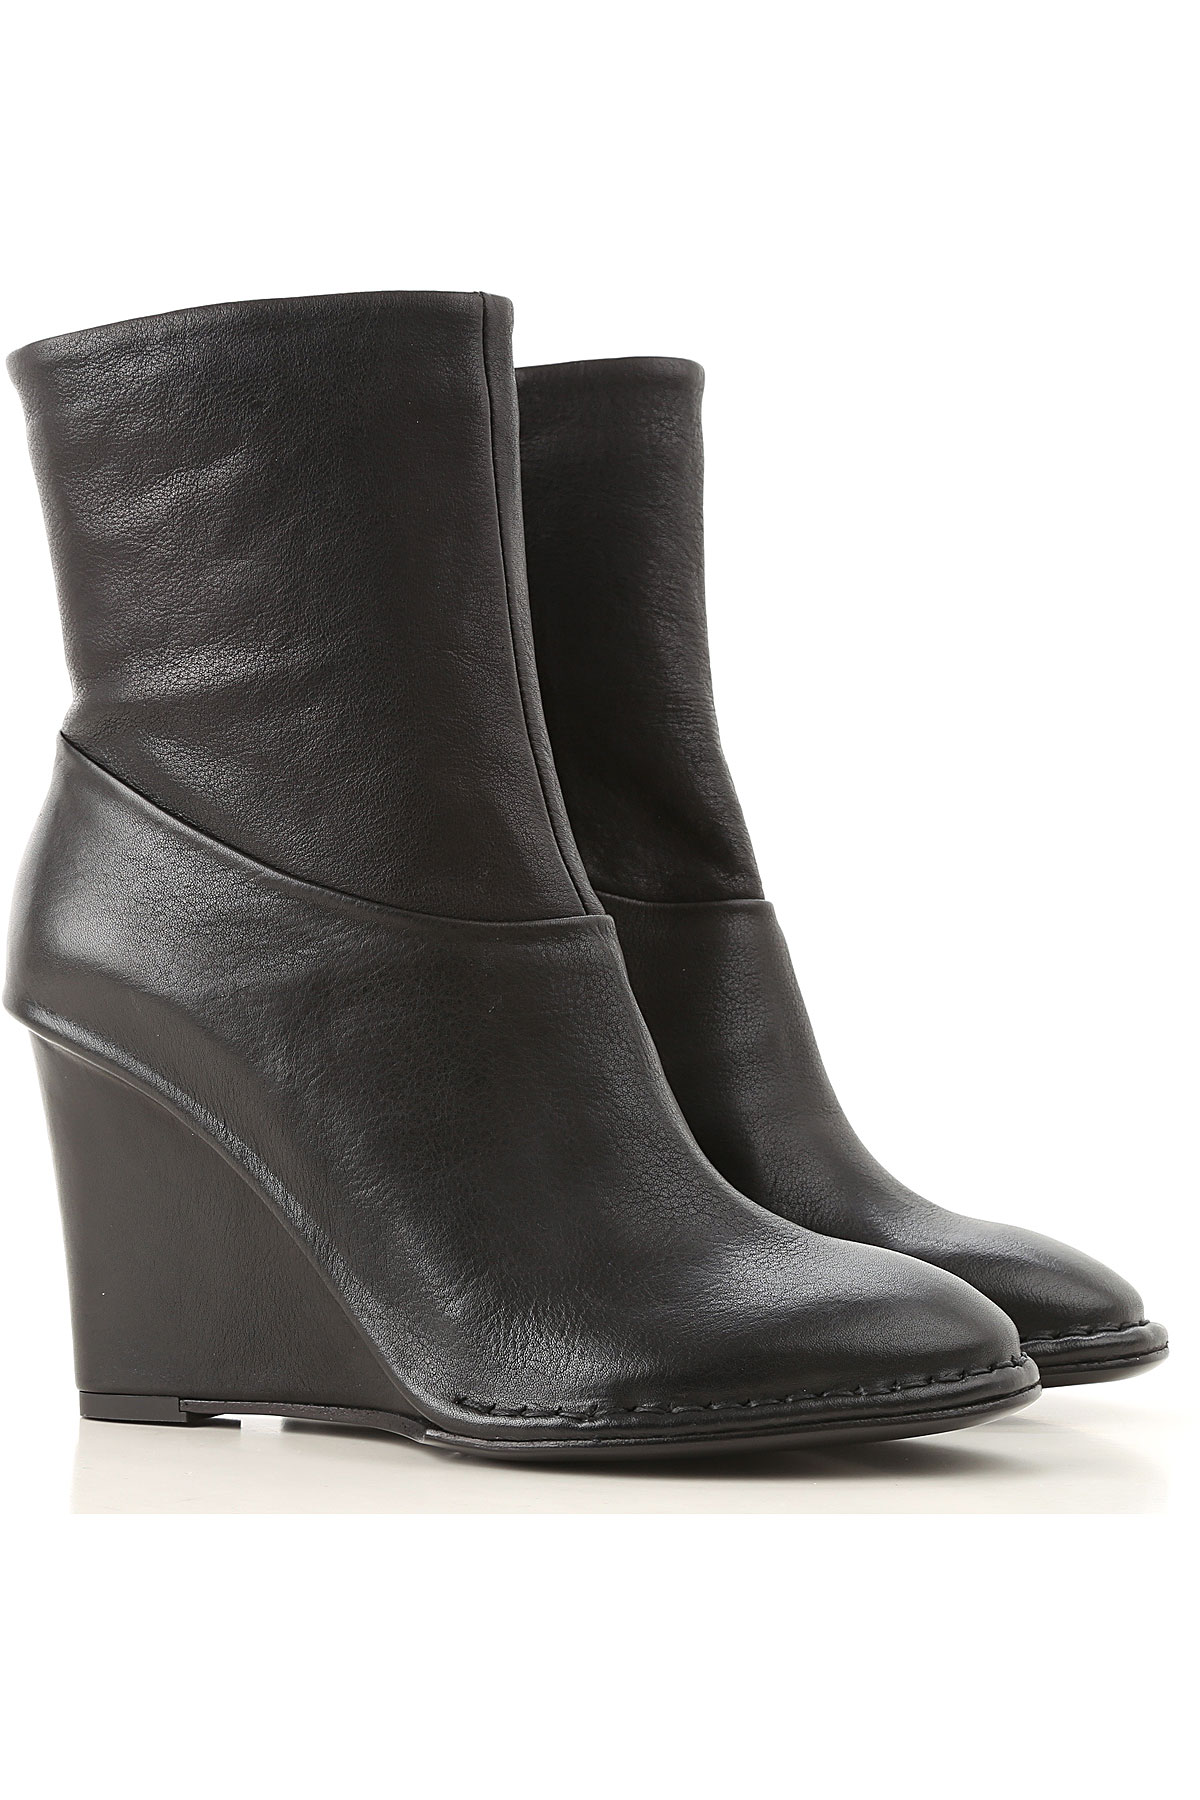 Image of Roberto Del Carlo Boots for Women, Booties, Black, Leather, 2017, 10 7 8 9